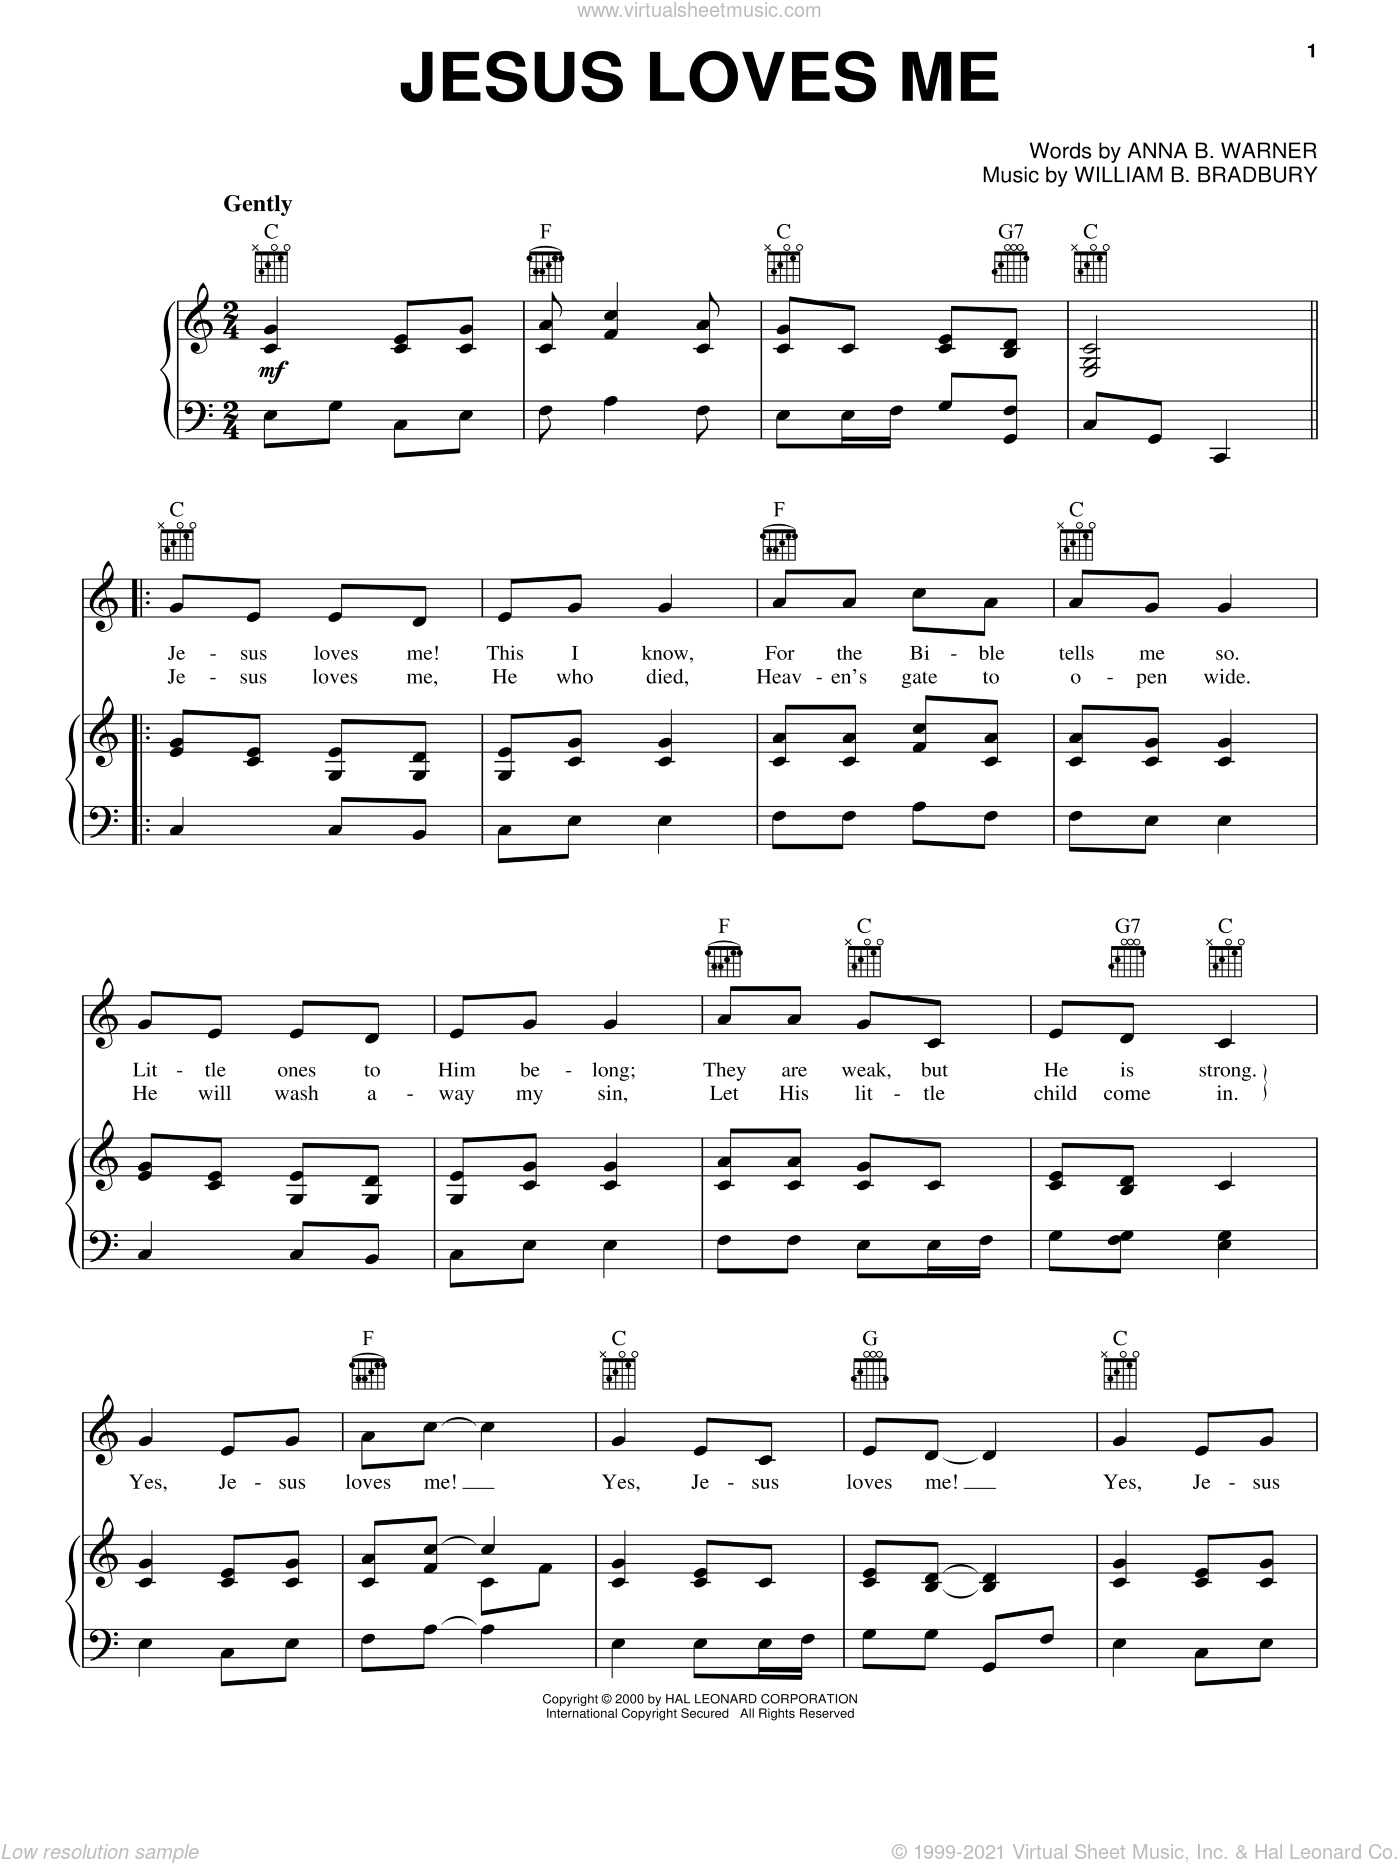 Jesus Loves Me sheet music for voice, piano or guitar by Anna B. Warner and William B. Bradbury, intermediate skill level